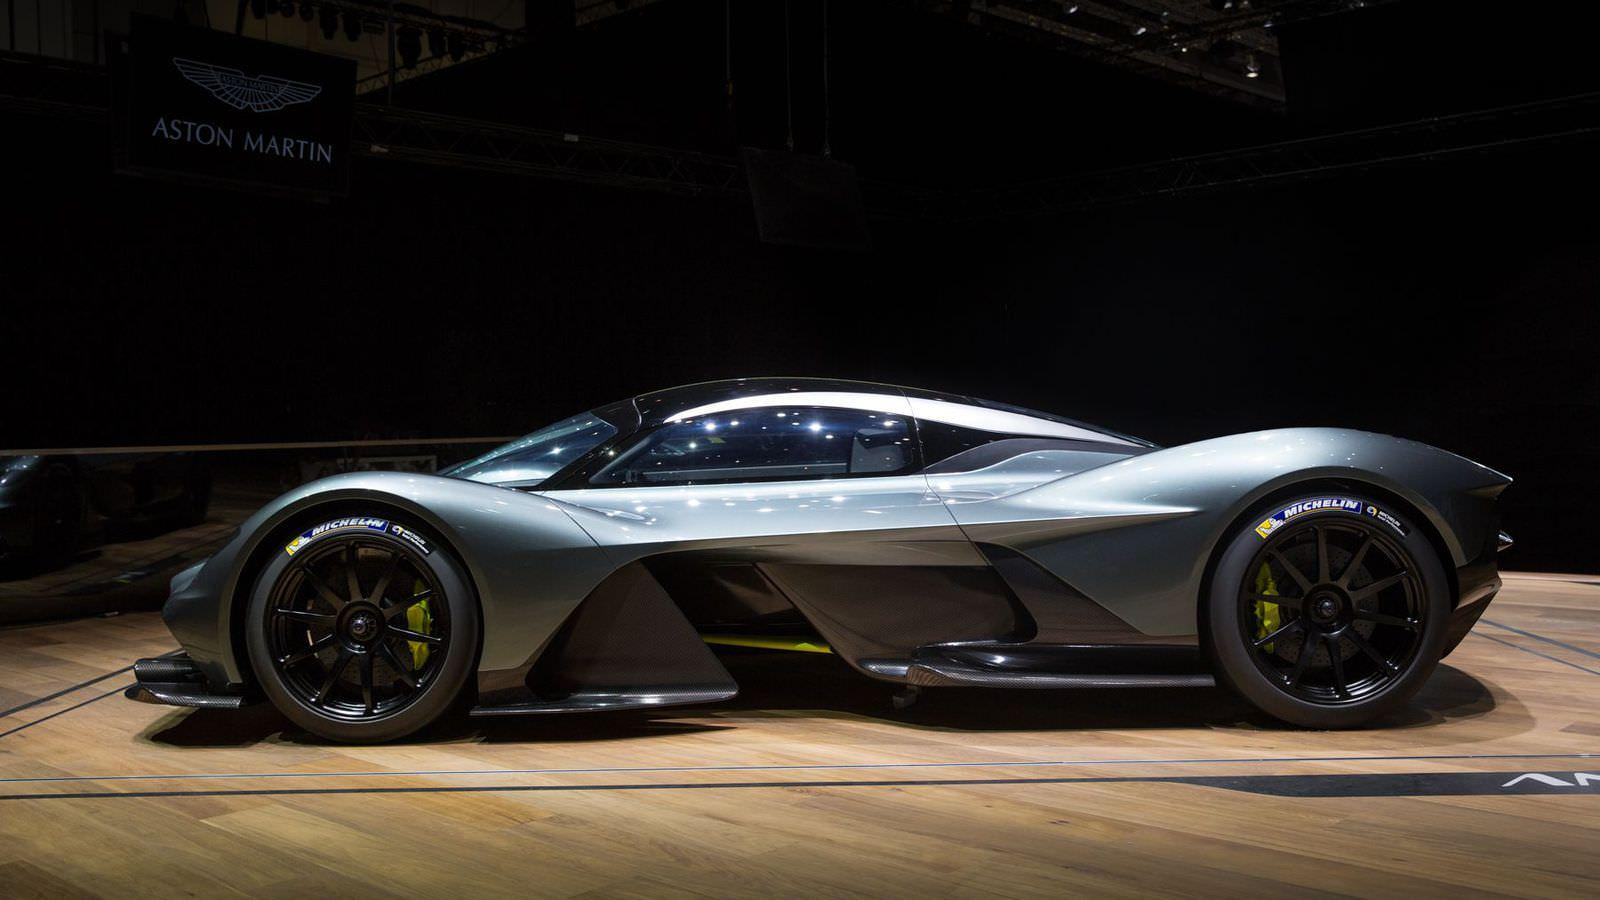 Aston Martin Valkyrie, The Outstanding Significance As A Vehicle